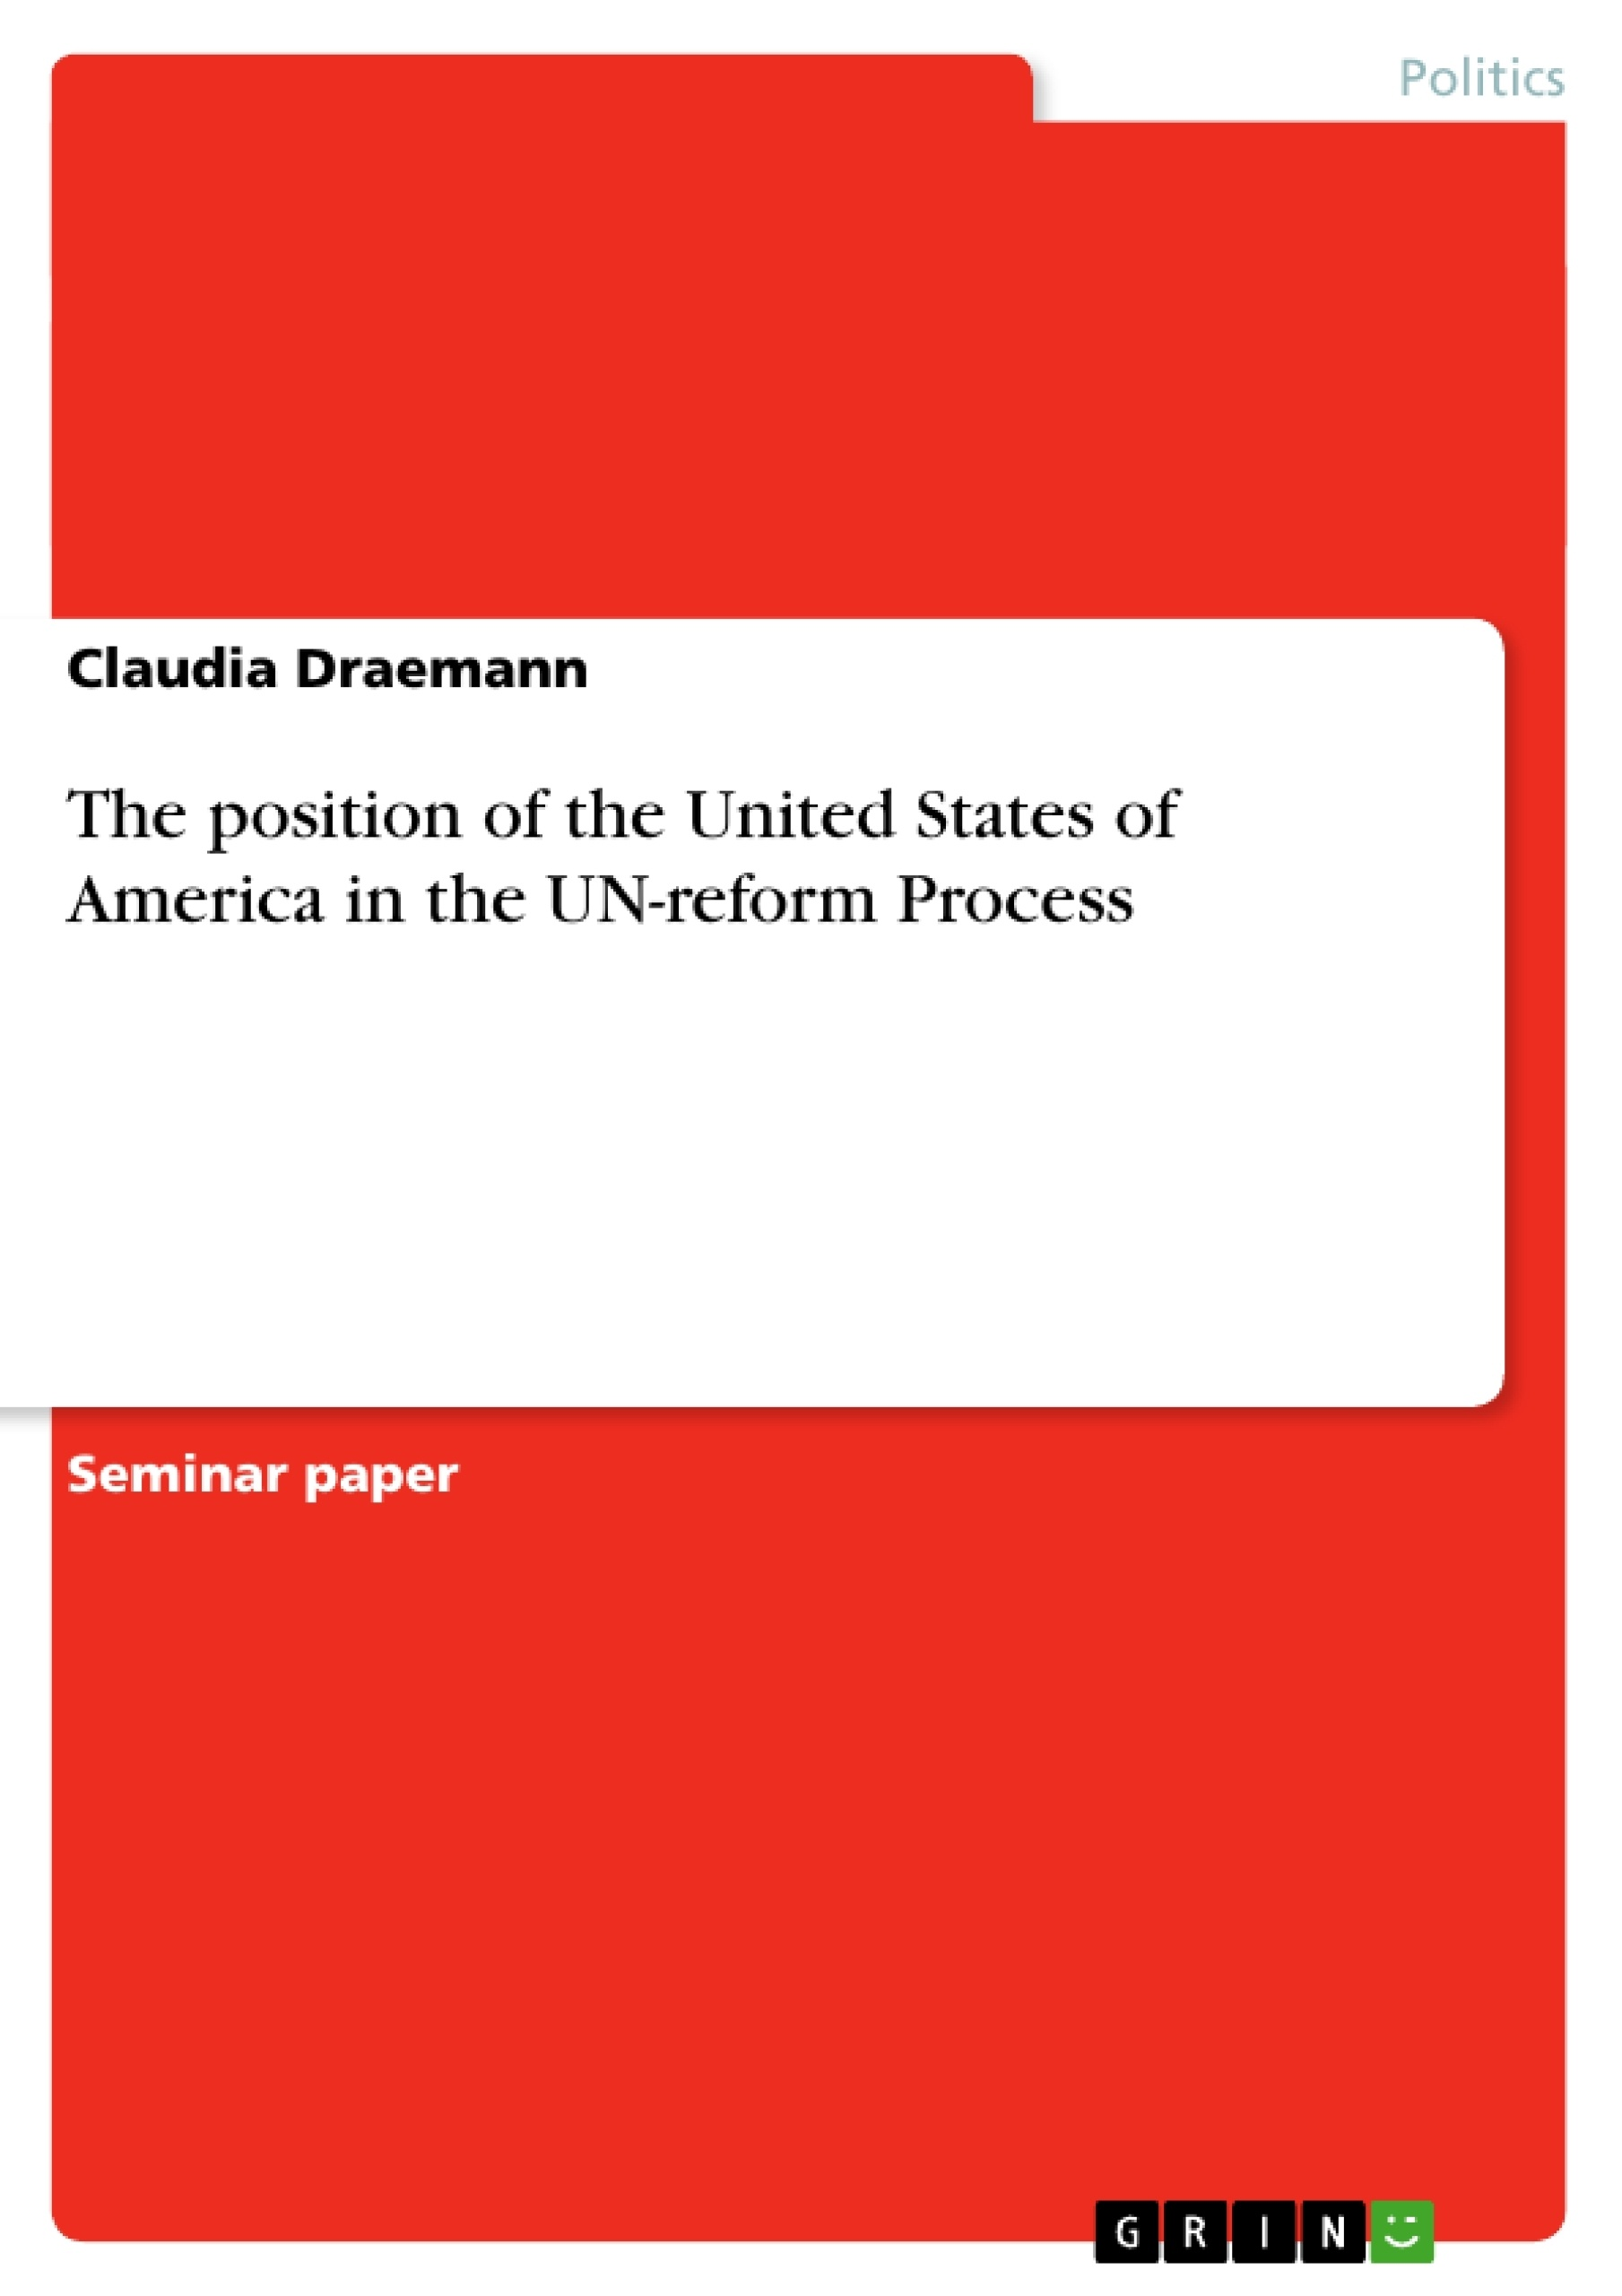 Title: The position of the United States of America in the UN-reform Process